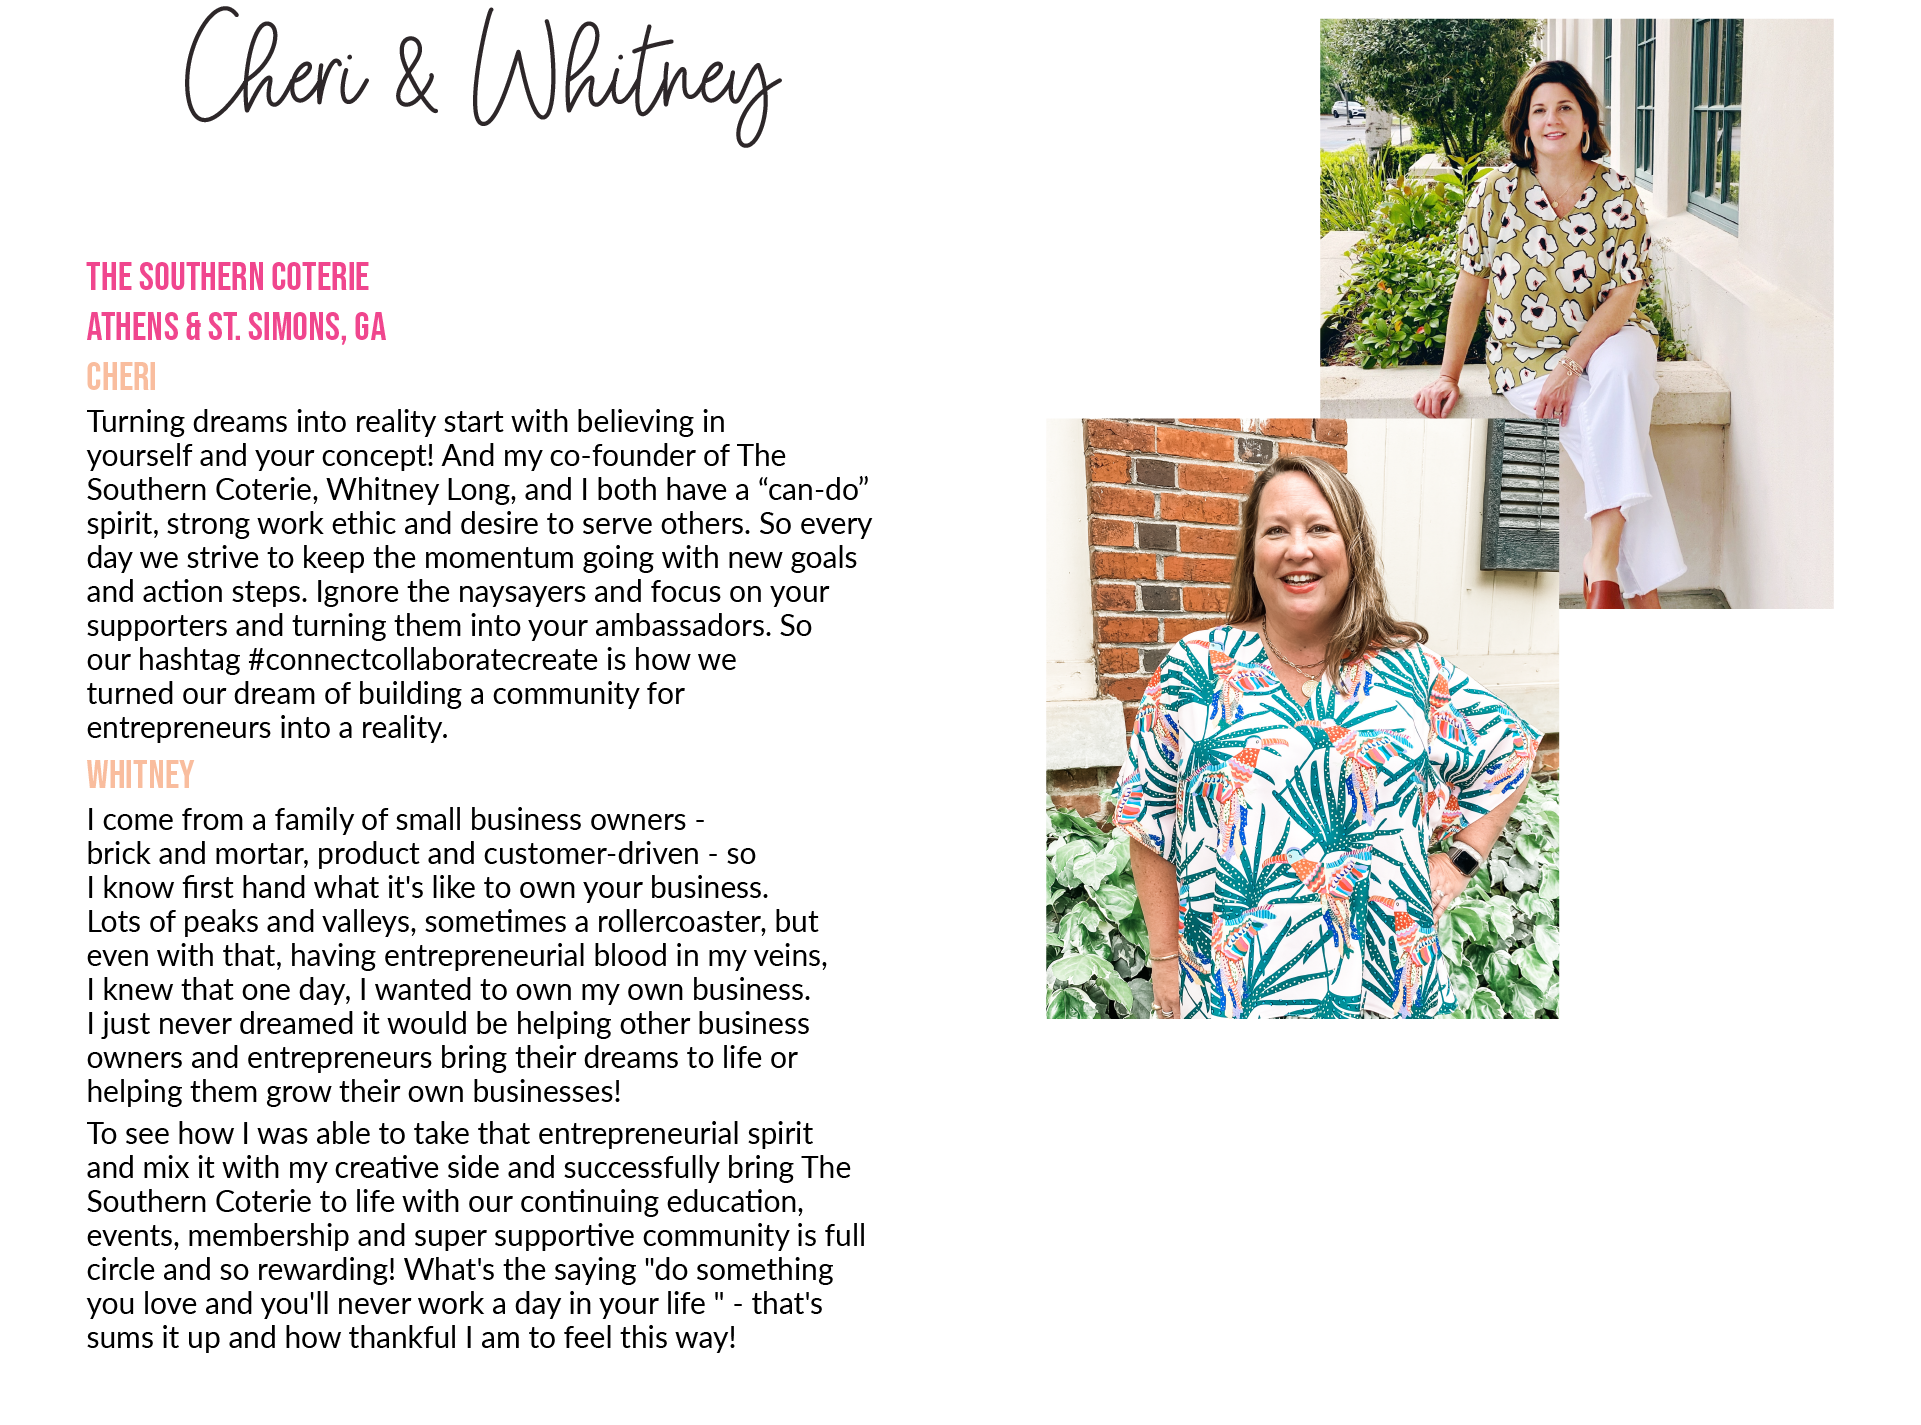 """Cheri & WhitneyThe Southern Coterie Athens & St. Simons, GA Cheri Turning dreams into reality start with believing in yourself and your concept! And my co-founder of The Southern Coterie, Whitney Long, and I both have a """"can-do"""" spirit, strong work ethic and desire to serve others. So every day we strive to keep the momentum going with new goals and action steps. Ignore the naysayers and focus on your supporters and turning them into your ambassadors. So our hashtag #connectcollaboratecreate is how we turned our dream of building a community for entrepreneurs into a reality. Whitney I come from a family of small business owners - brick and mortar, product and customer-driven - so I know first hand what it's like to own your business. Lots of peaks and valleys, sometimes a rollercoaster, but even with that, having entrepreneurial blood in my veins, I knew that one day, I wanted to own my own business. I just never dreamed it would be helping other business owners and entrepreneurs bring their dreams to life or helping them grow their own businesses! To see how I was able to take that entrepreneurial spirit and mix it with my creative side and successfully bring The Southern Coterie to life with our continuing education, events, membership and super supportive community is full circle and so rewarding! What's the saying """"do something you love and you'll never work a day in your life """" - that's sums it up and how thankful I am to feel this way!"""